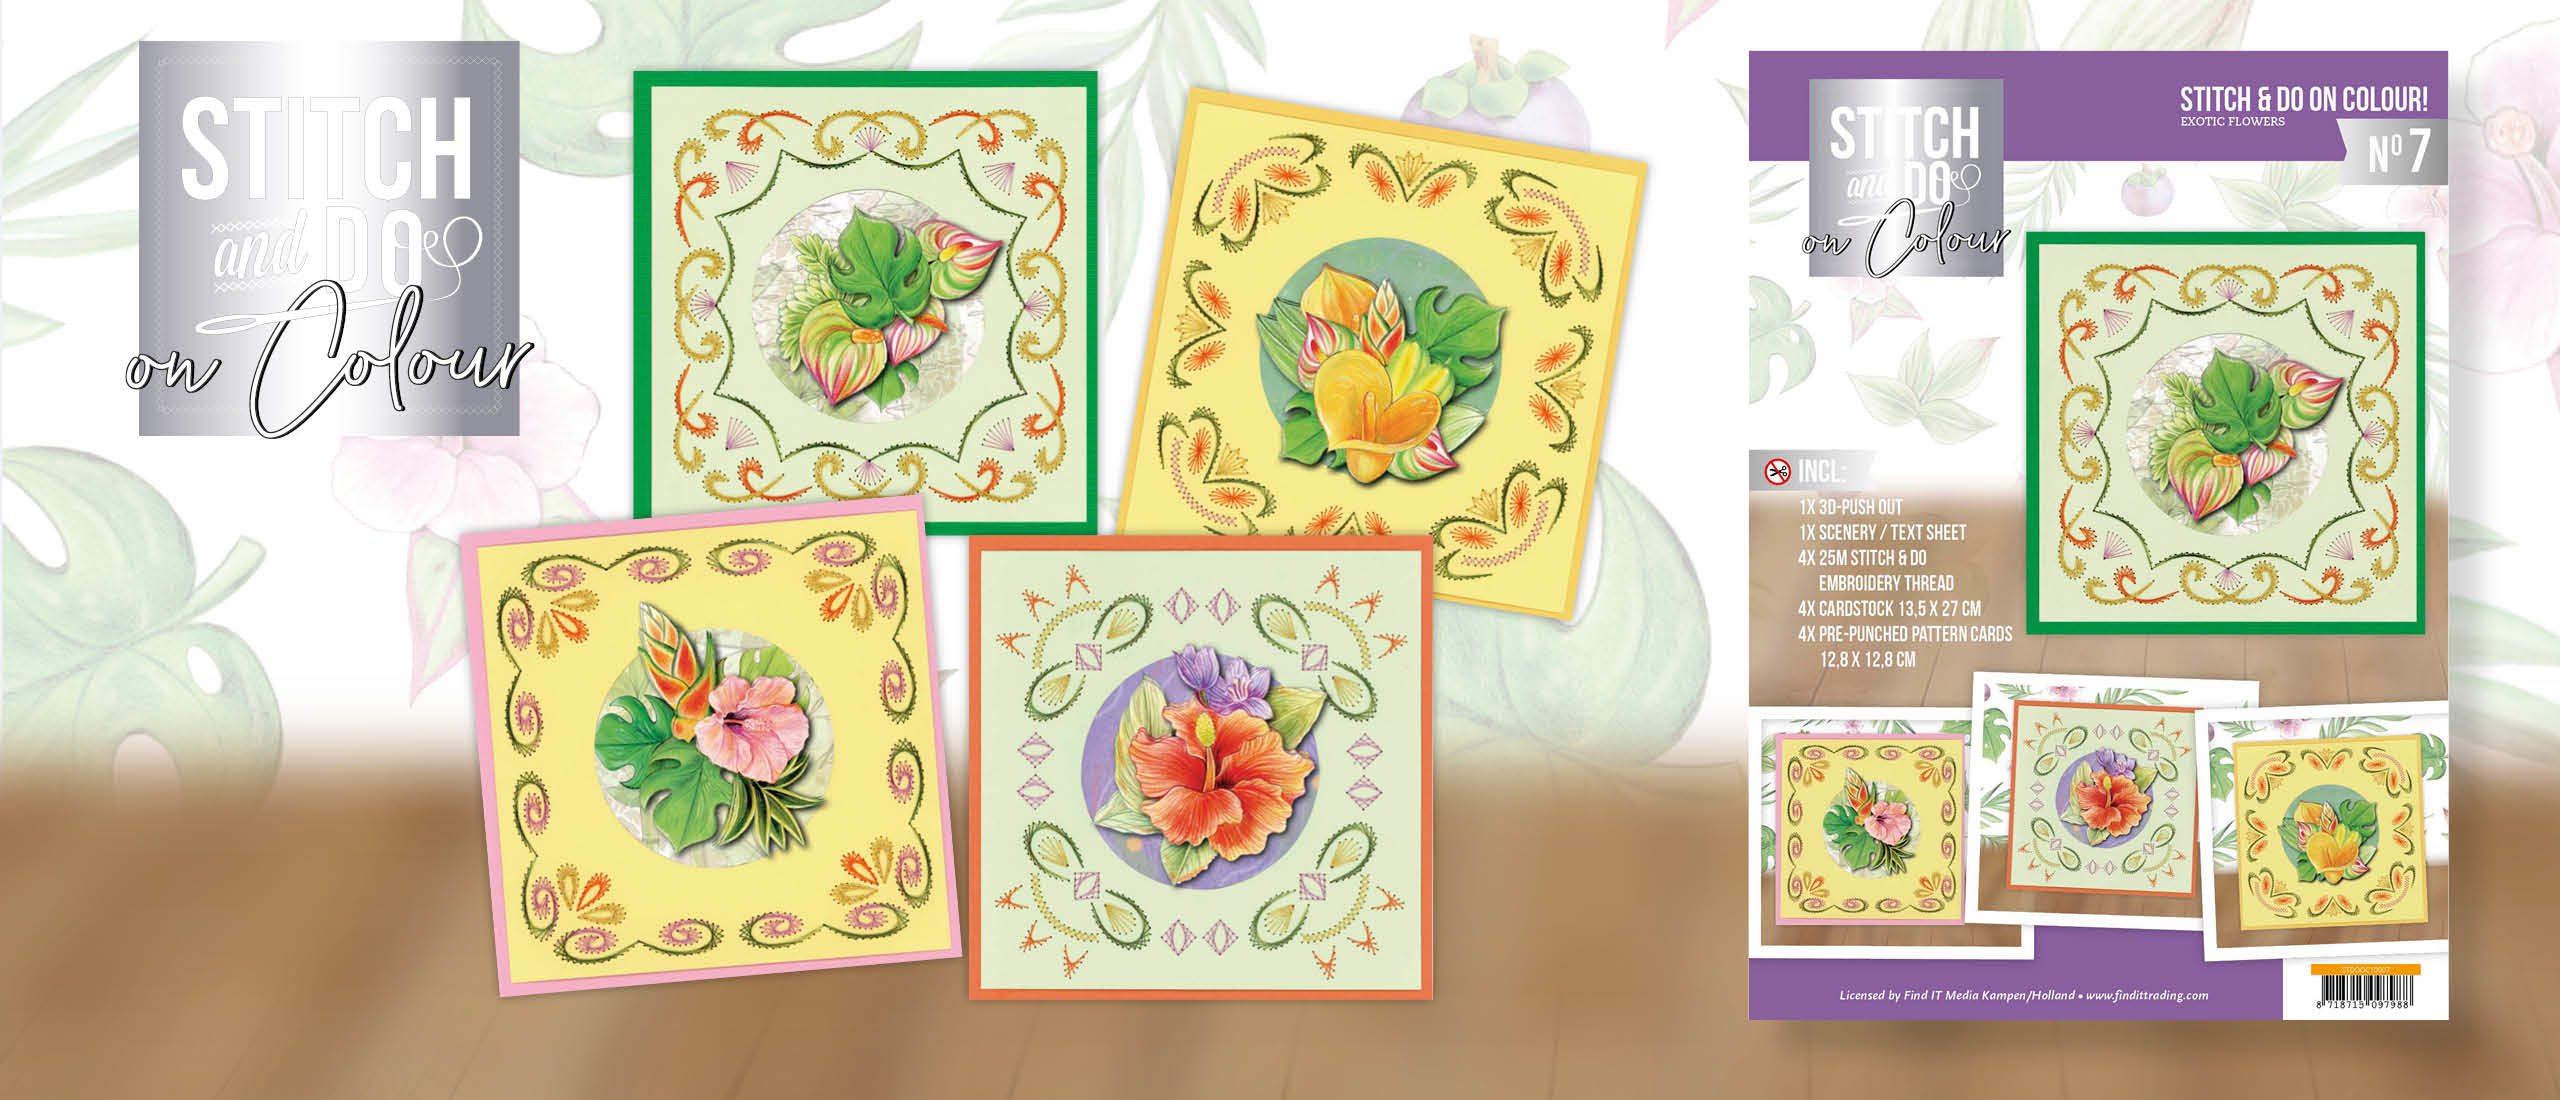 Stitch and Do on Colour 007 - Jeanine's Art - Exotic Flowers